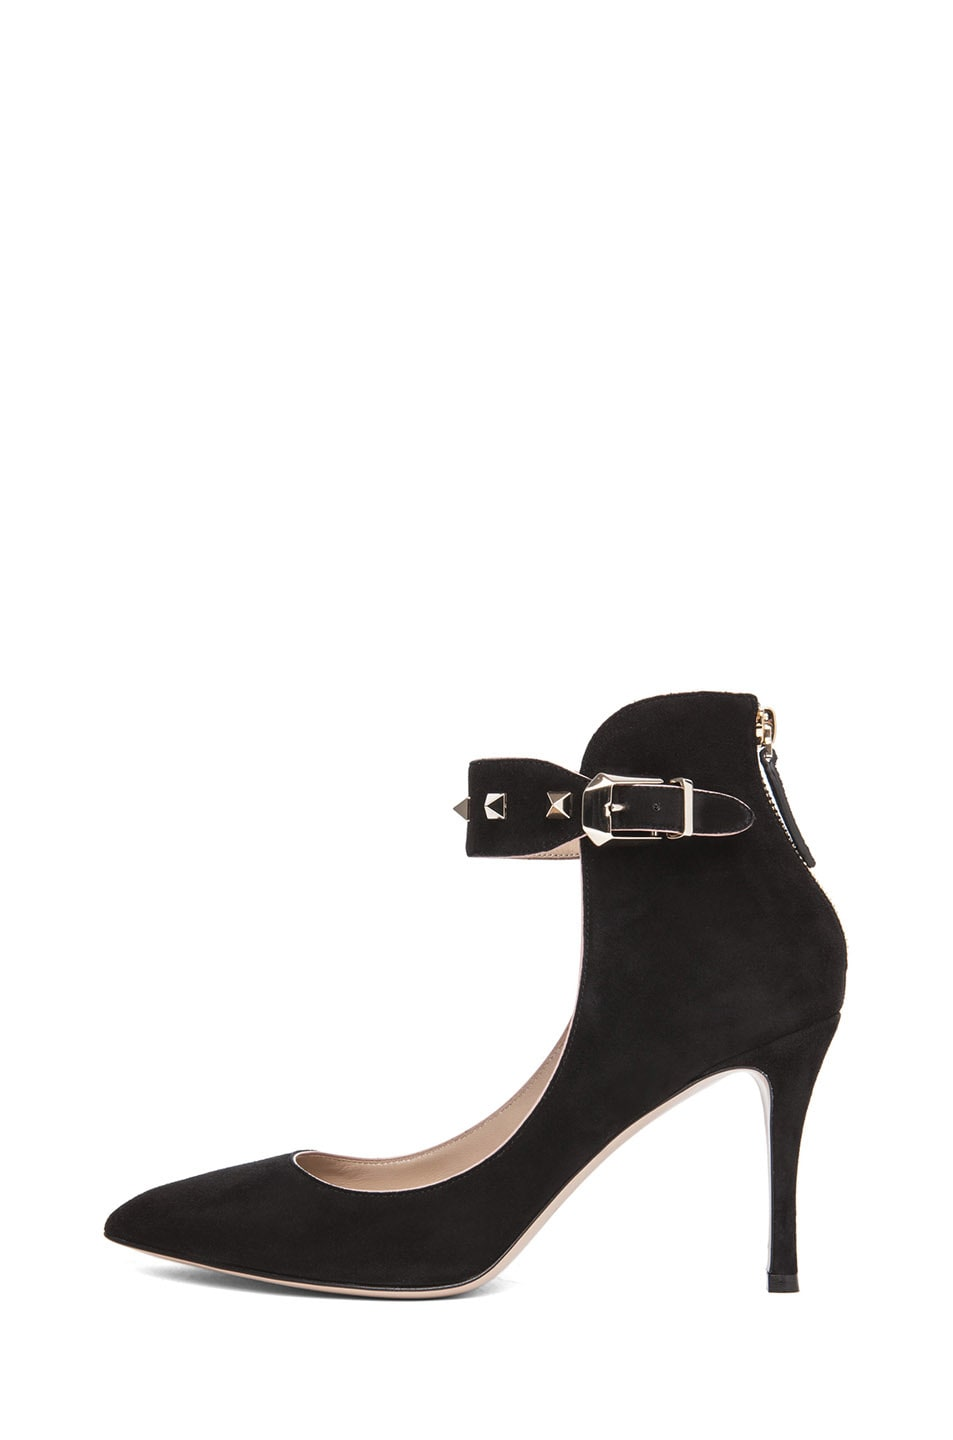 fc4f92eb866 Image 1 of Valentino Rockstud Suede Ankle Strap Pump in Black Suede